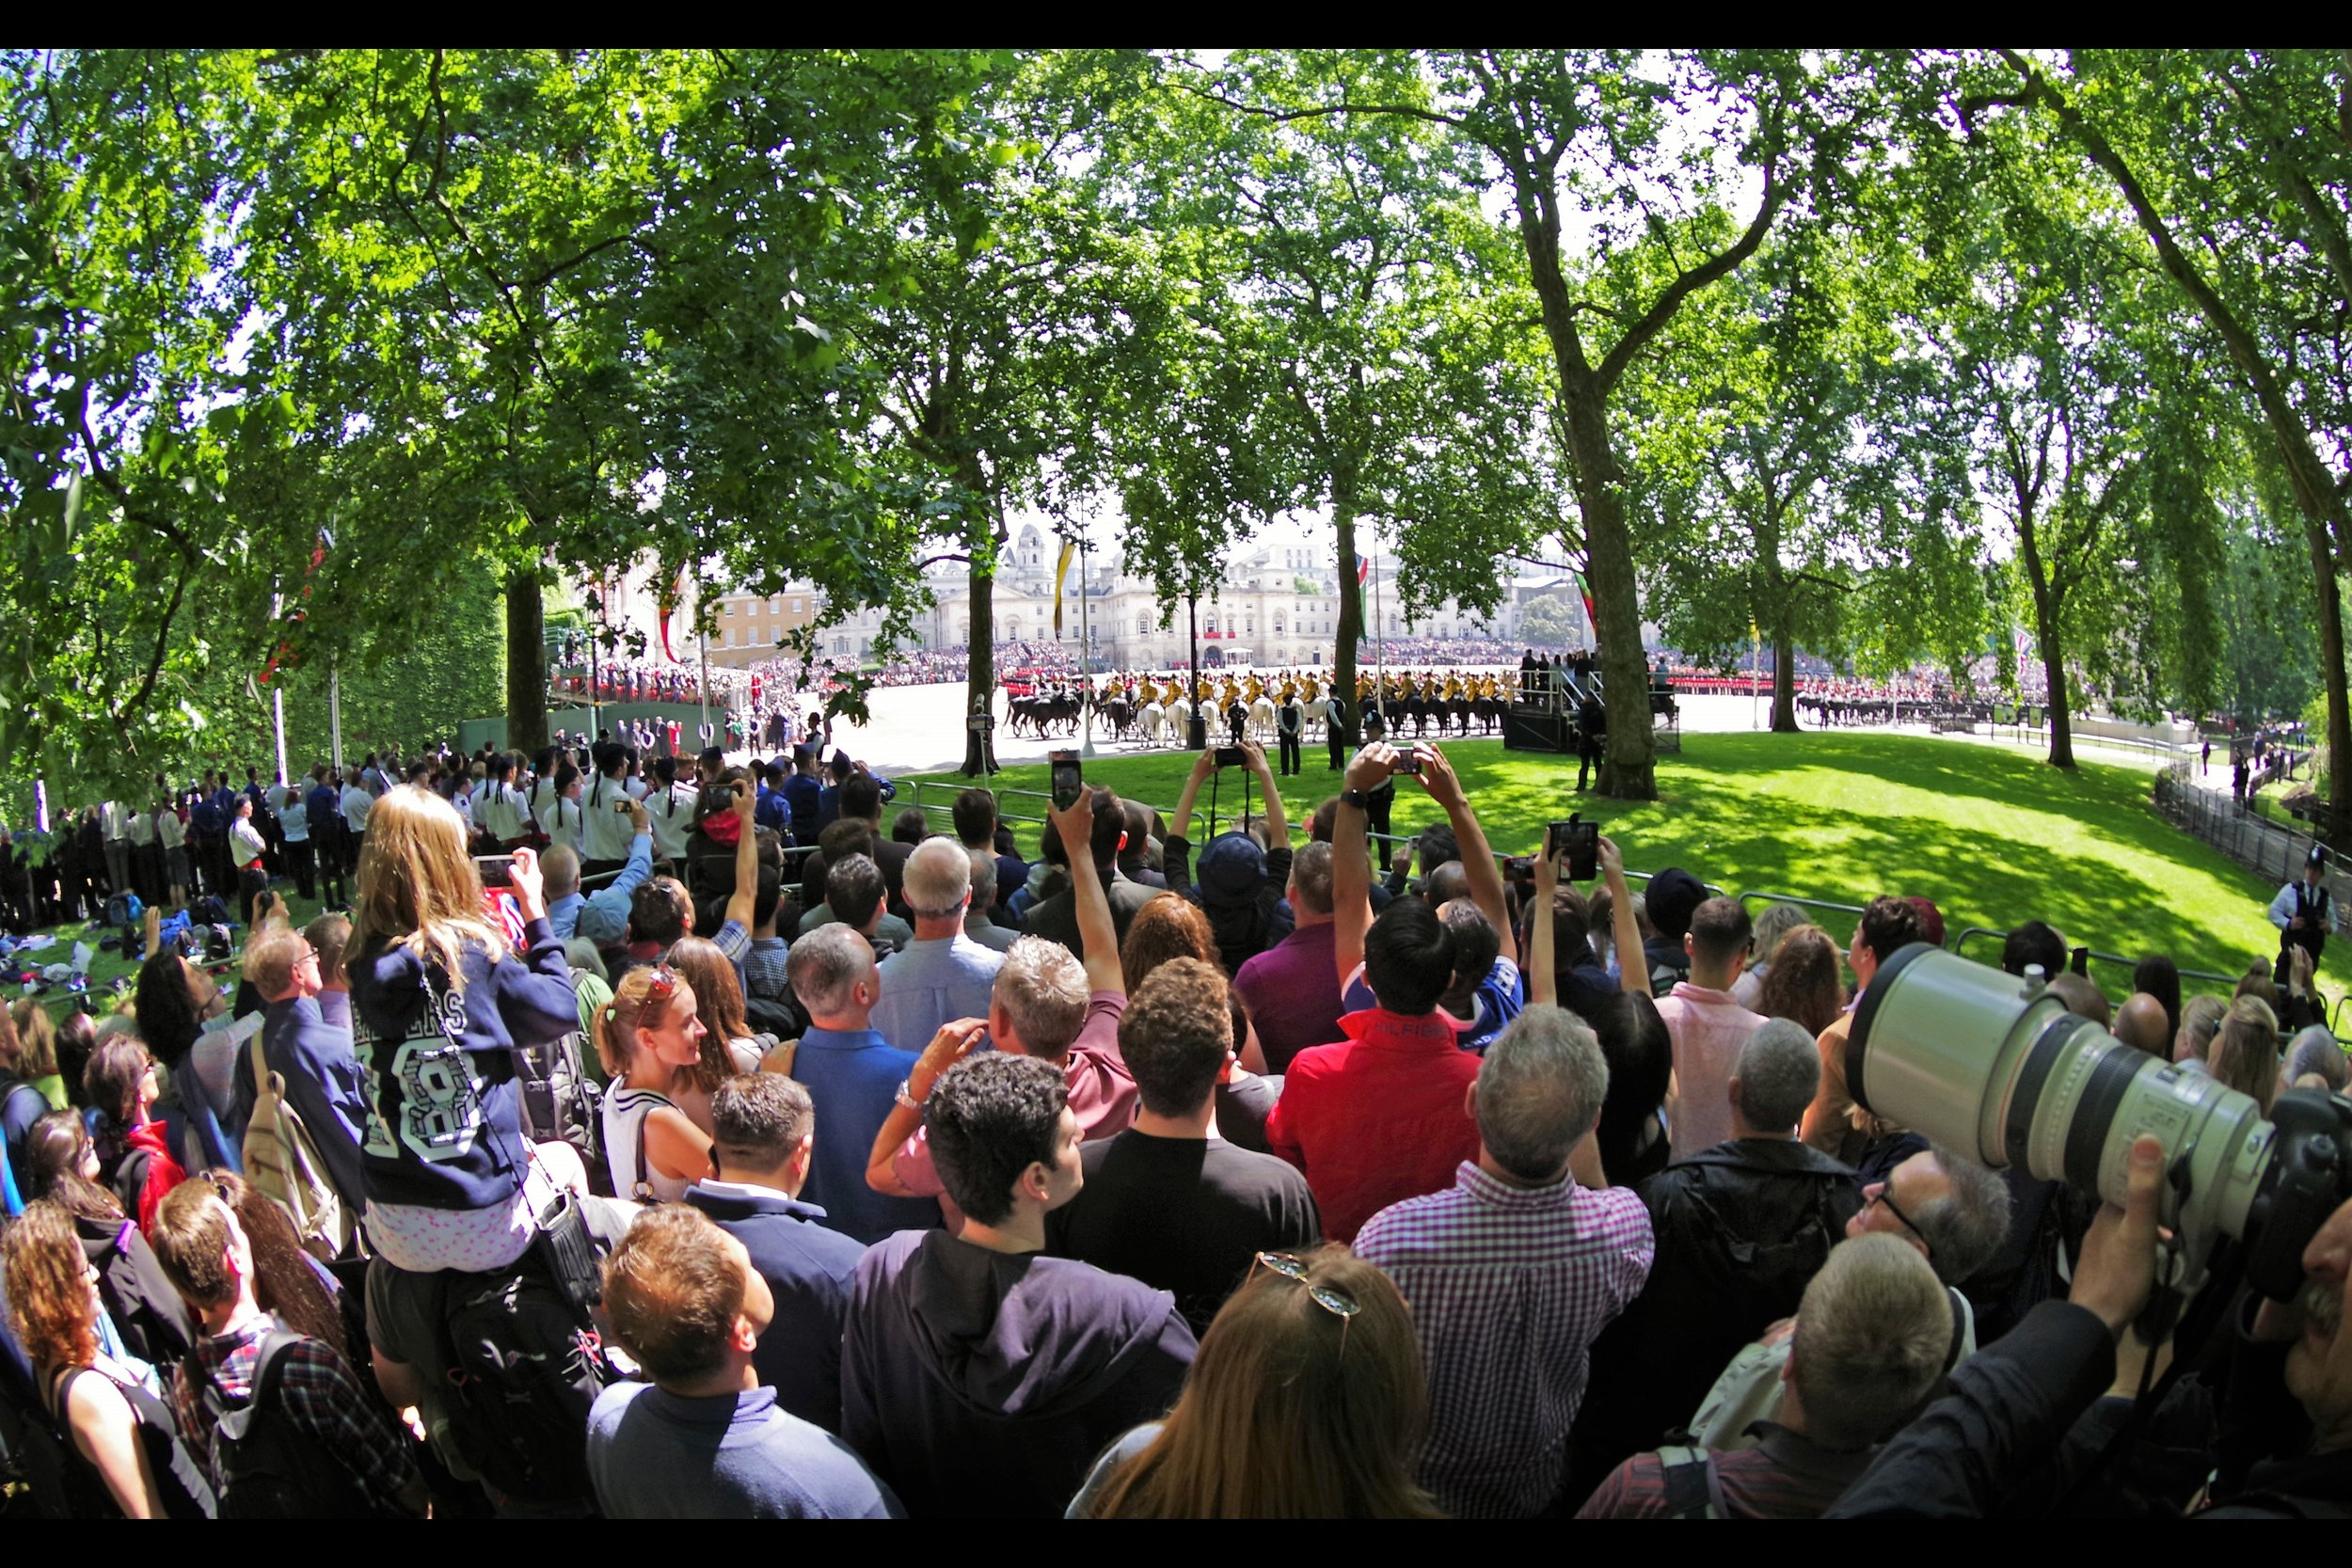 """With the Queen's carriage having passed by, I switched to Location 2 - still inside the park, but facing East and across to Horse Guards Palace where the actual """"Trooping the Colour"""" is held."""